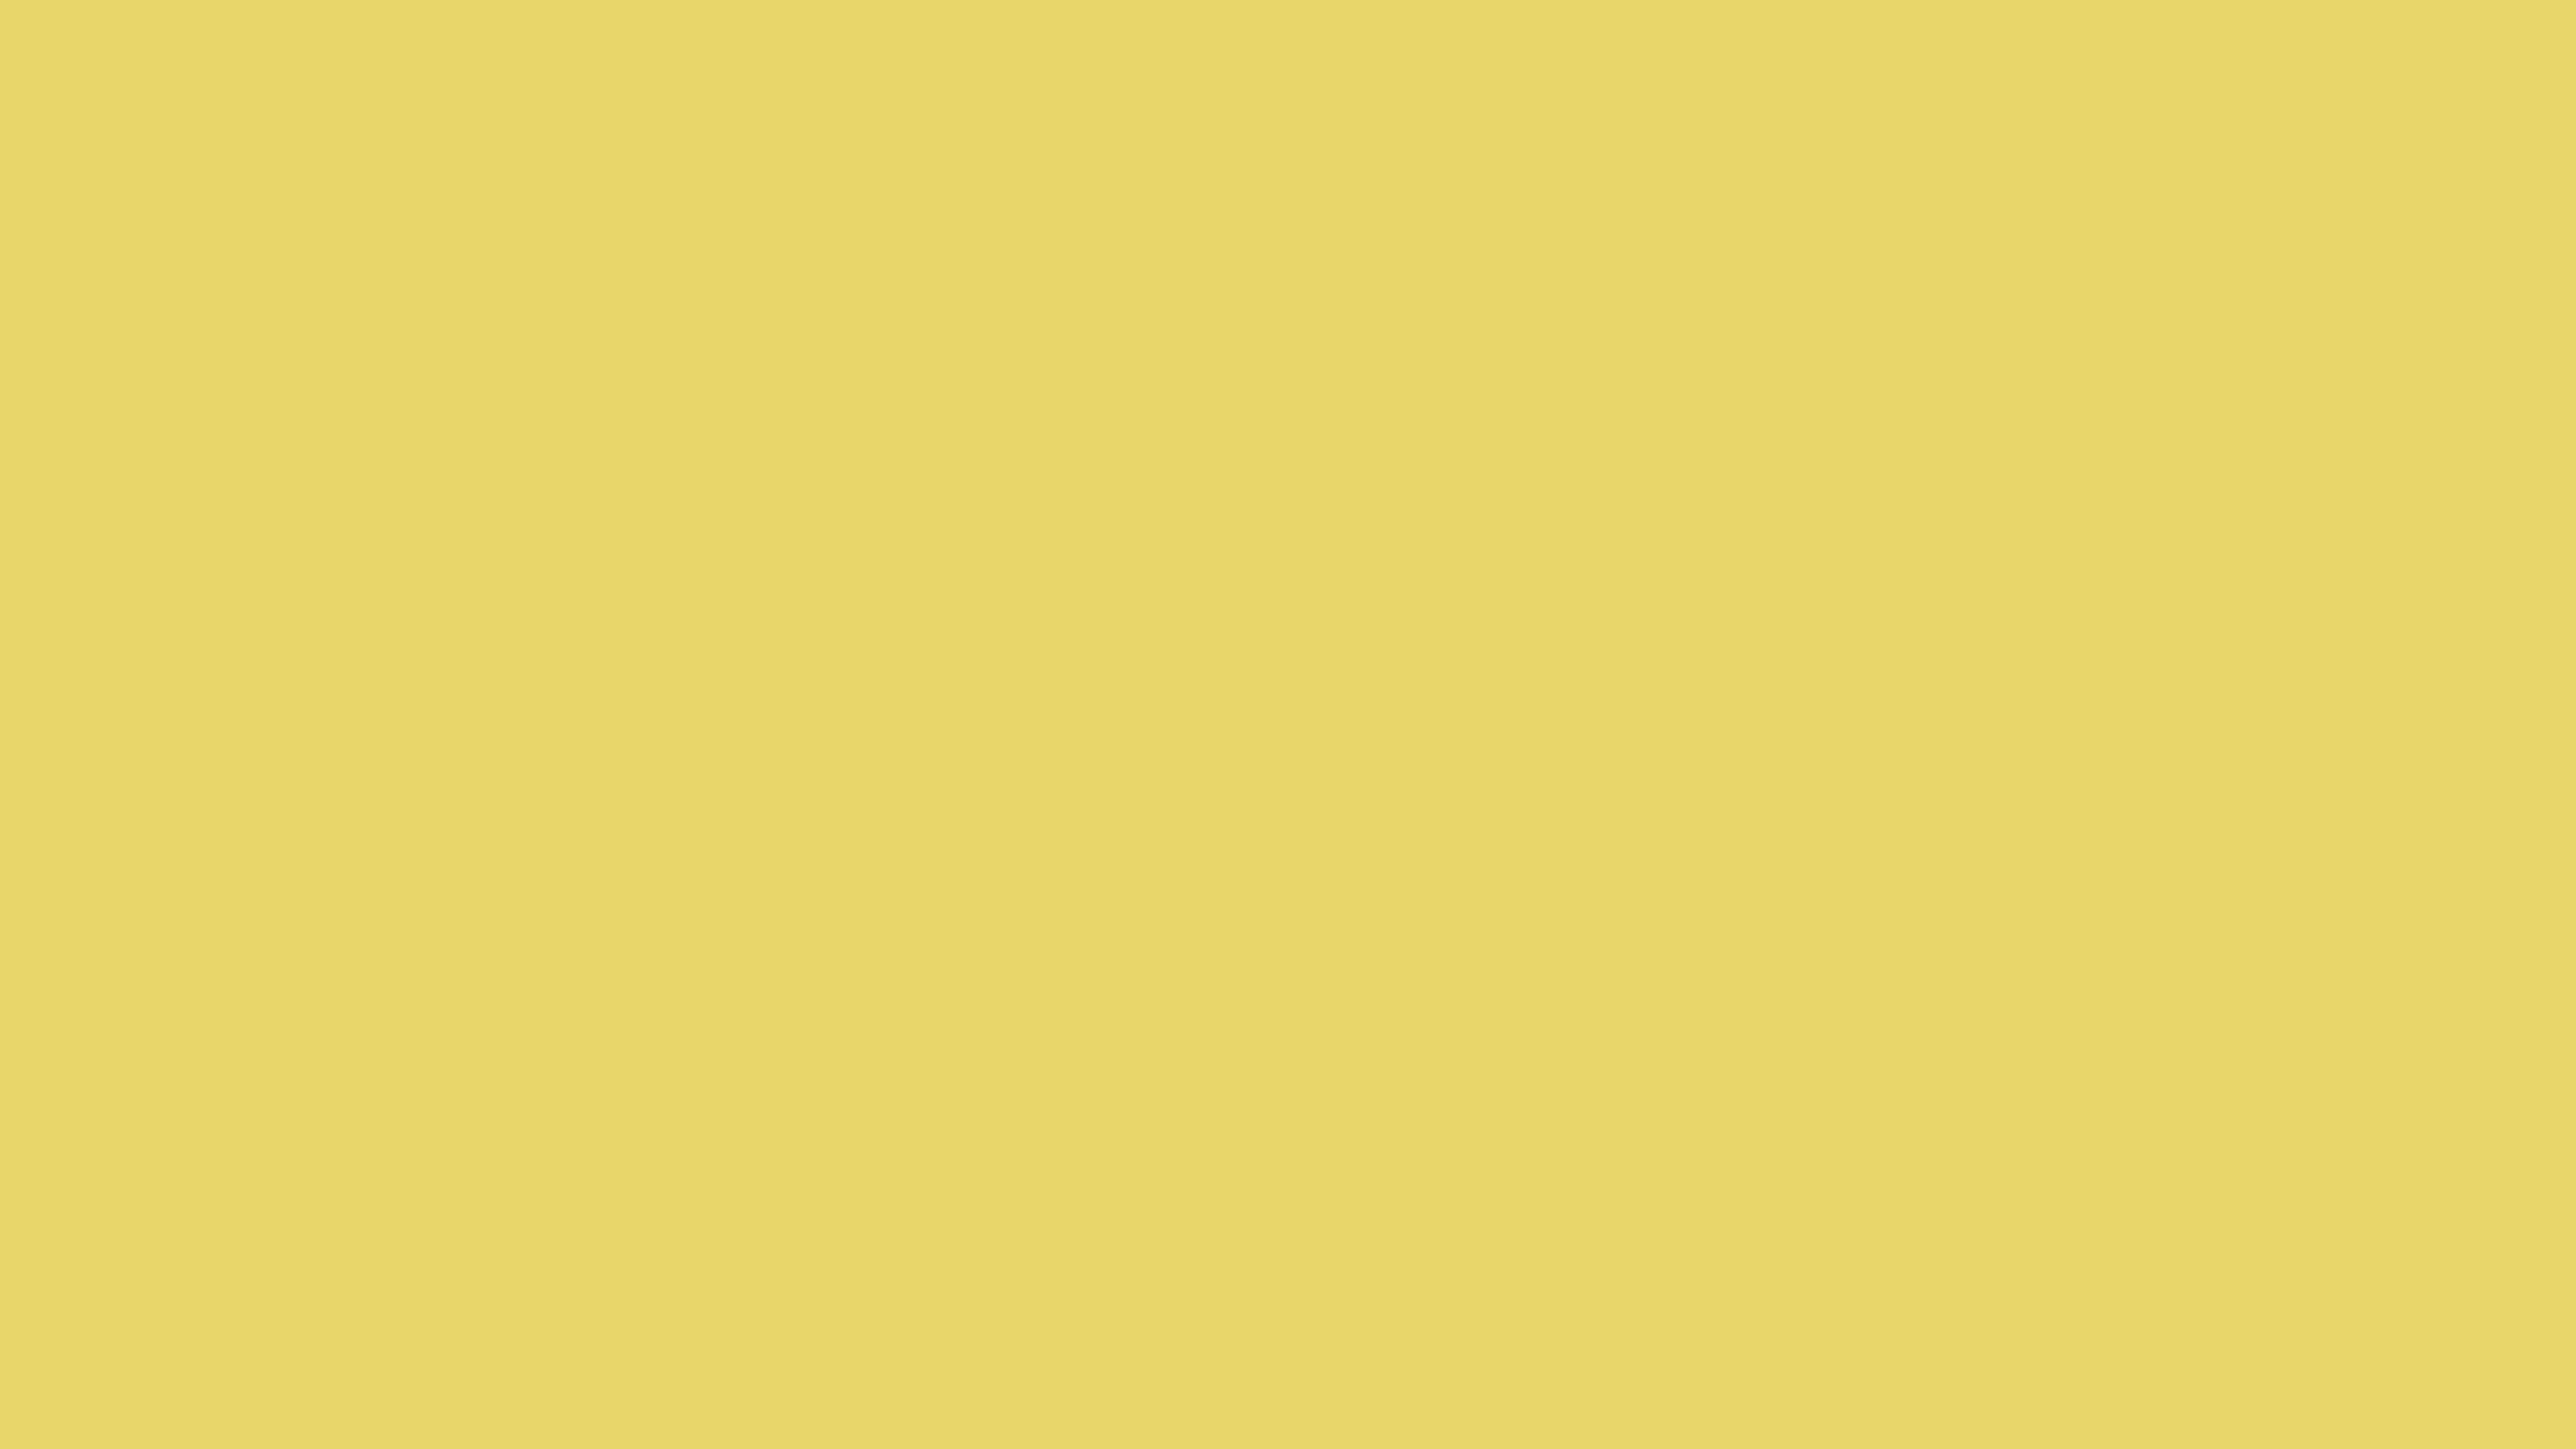 4096x2304 Hansa Yellow Solid Color Background